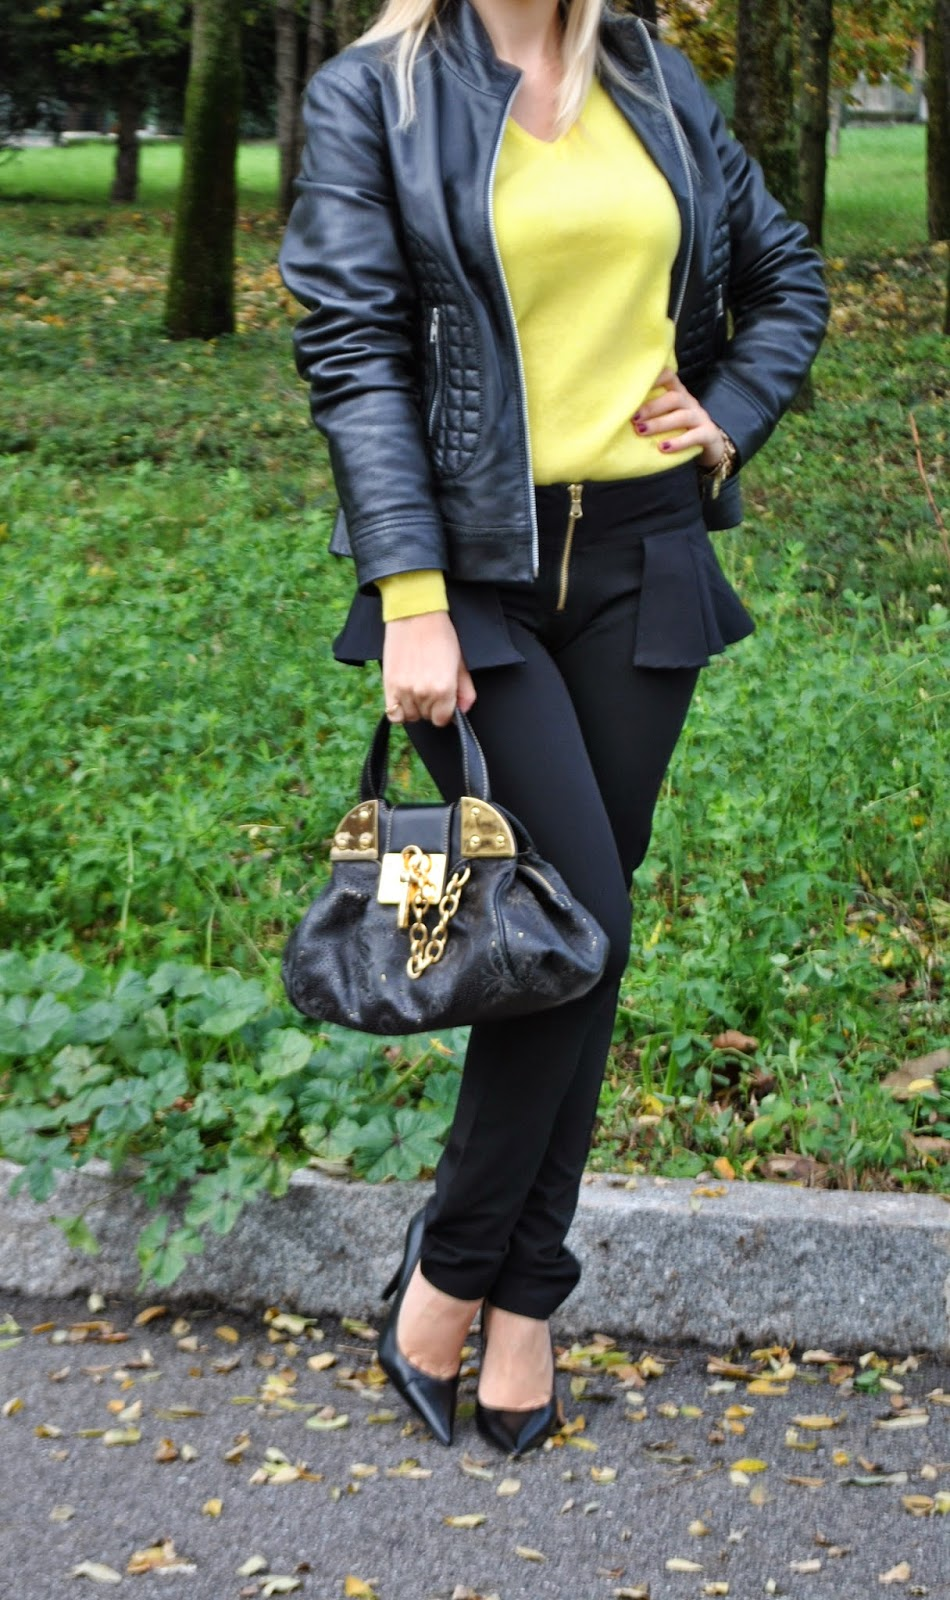 outfit giallo e nero abbinamenti giallo e nero come abbinare il giallo pantaloni neri con peplo sisley maglione giallo con scollo a v benetton giacca di pelle combipel décolleté francesco Biasia borsa braccialini bracciale con catena e monete majique majique london bracelet sweater benetton trousers sisley how to wear ywellow sweater black peplum trousers how to combine yellow and black outfit autunnali outfit novembre 2014 november outfits autumnal outfits fashion blogger italiane fashion blog italiani mariafelicia magno mariafelicia magno fashion blogger colorblock by felym fashion blogger bionde italian fashion bloggers fashion bloggers italy italian girls blonde girls